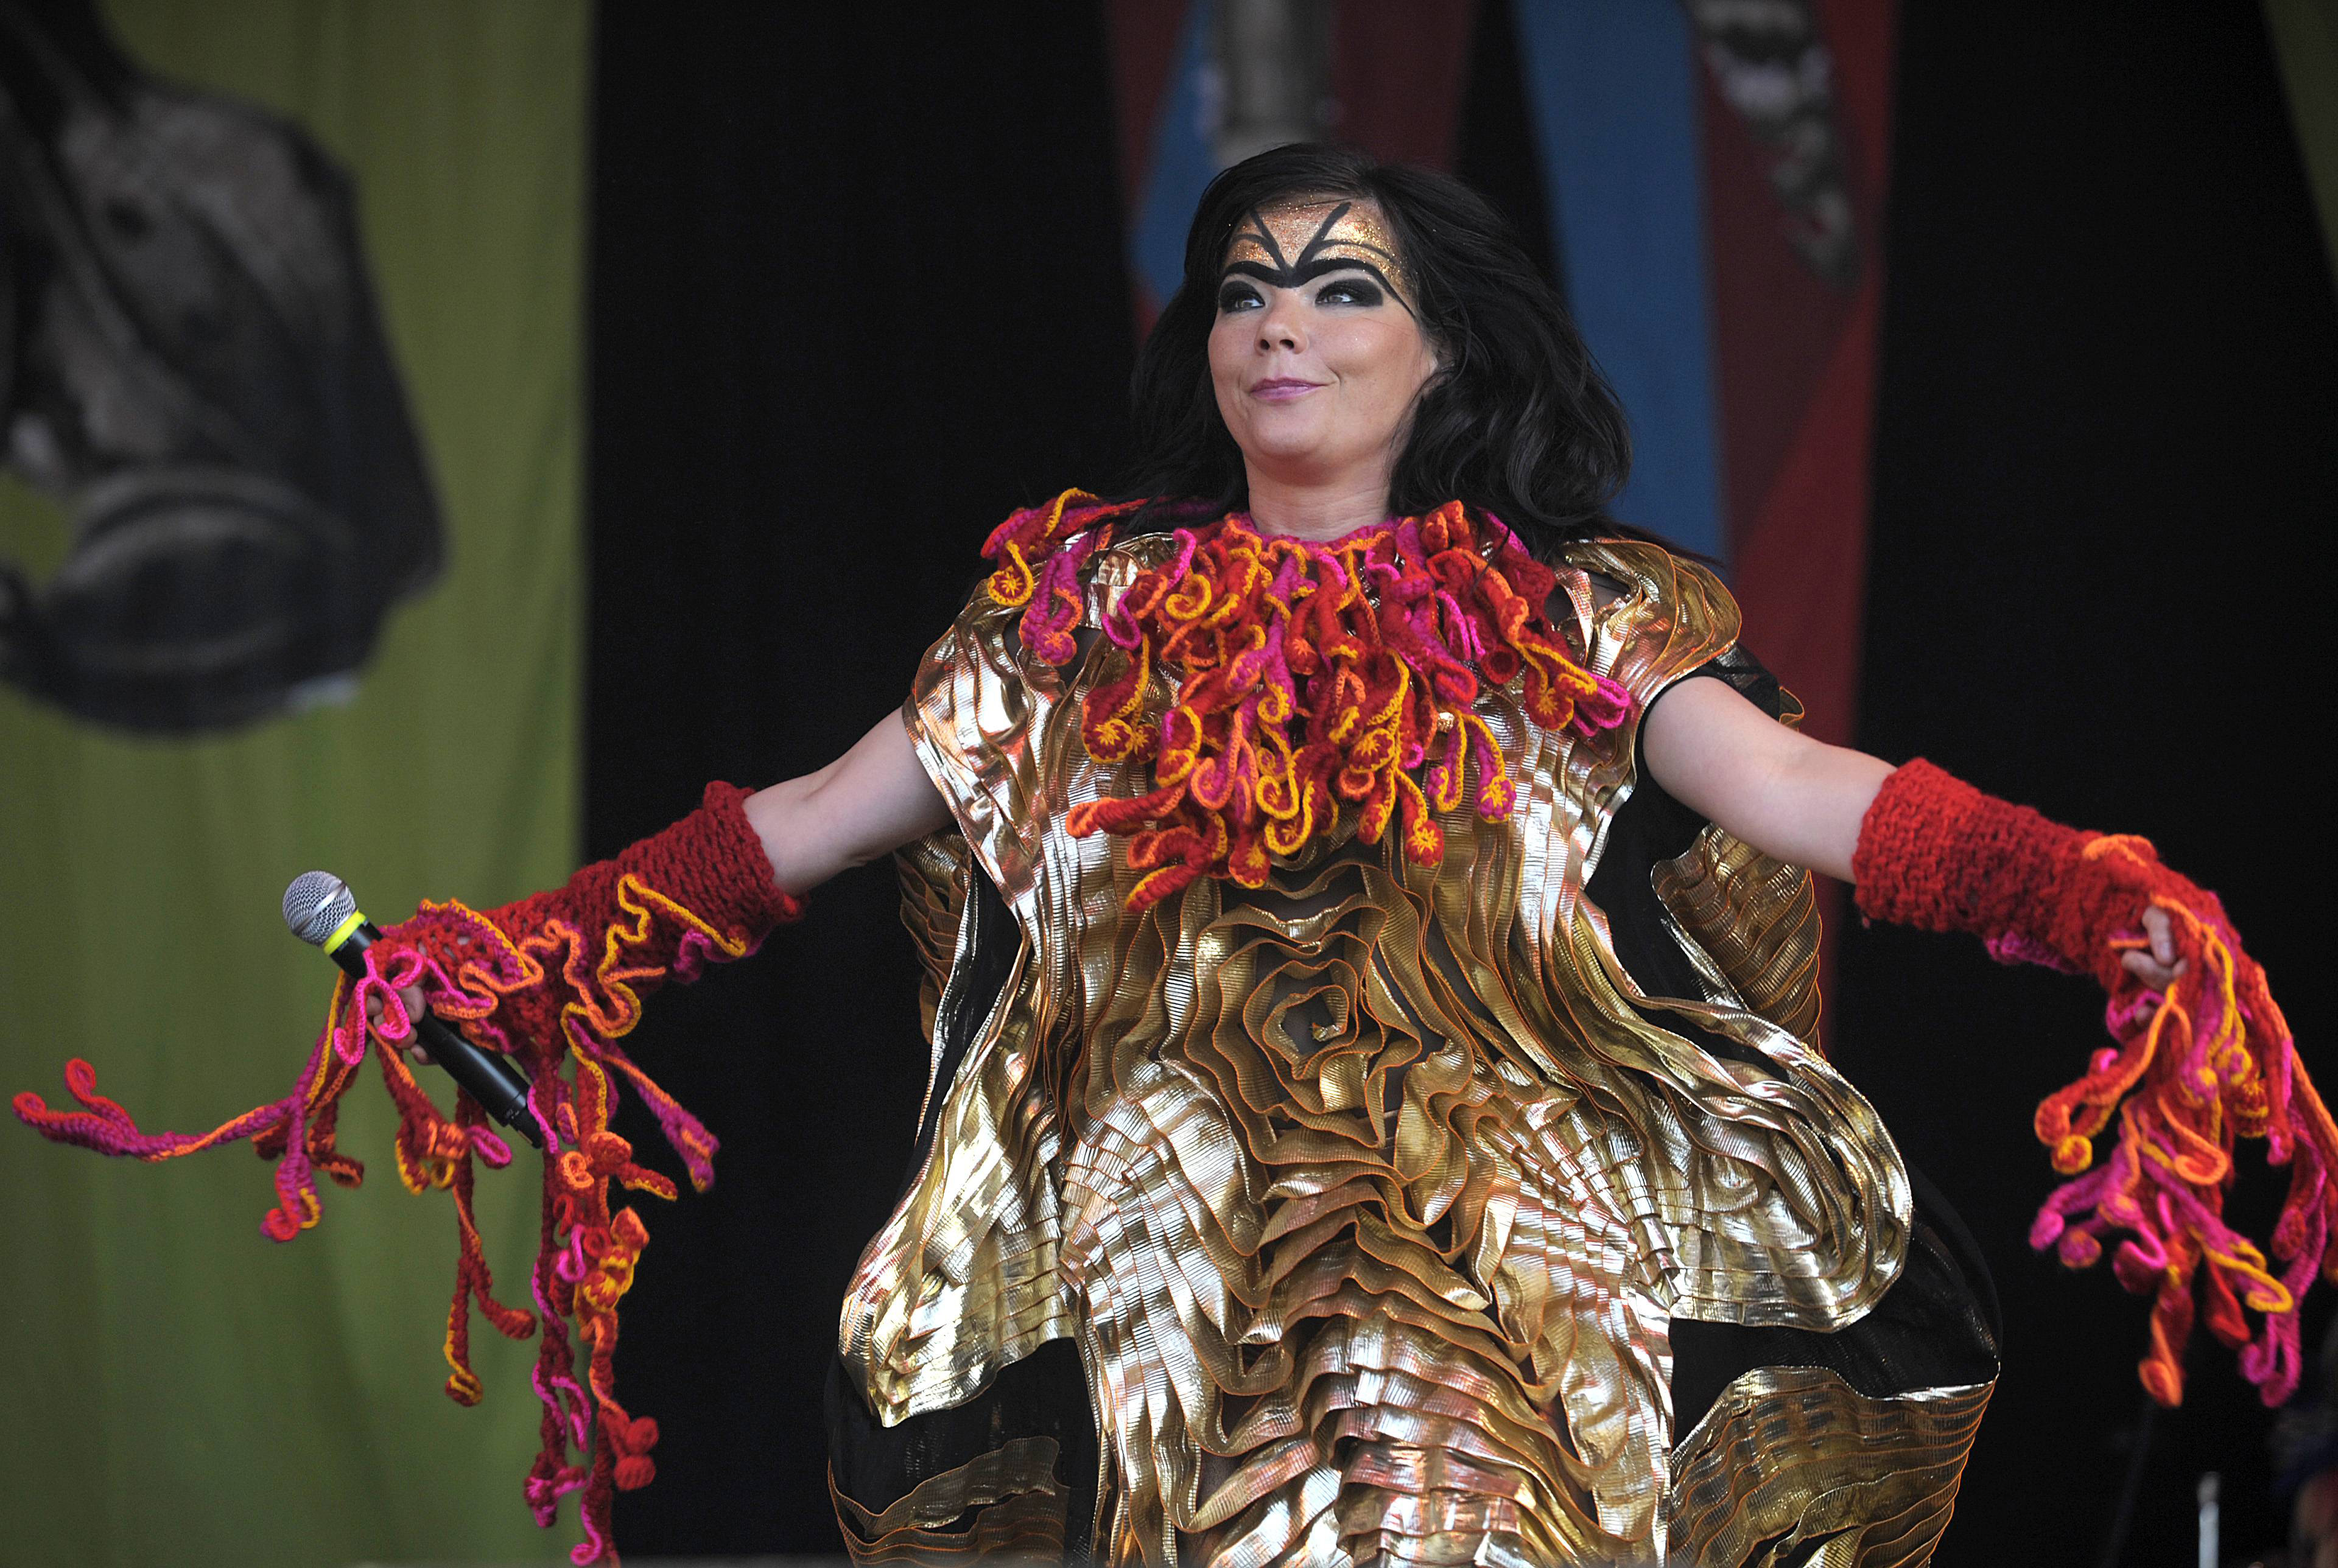 Björk performs during Big Day Out in Flemington, Australia on Jan. 28, 2008.